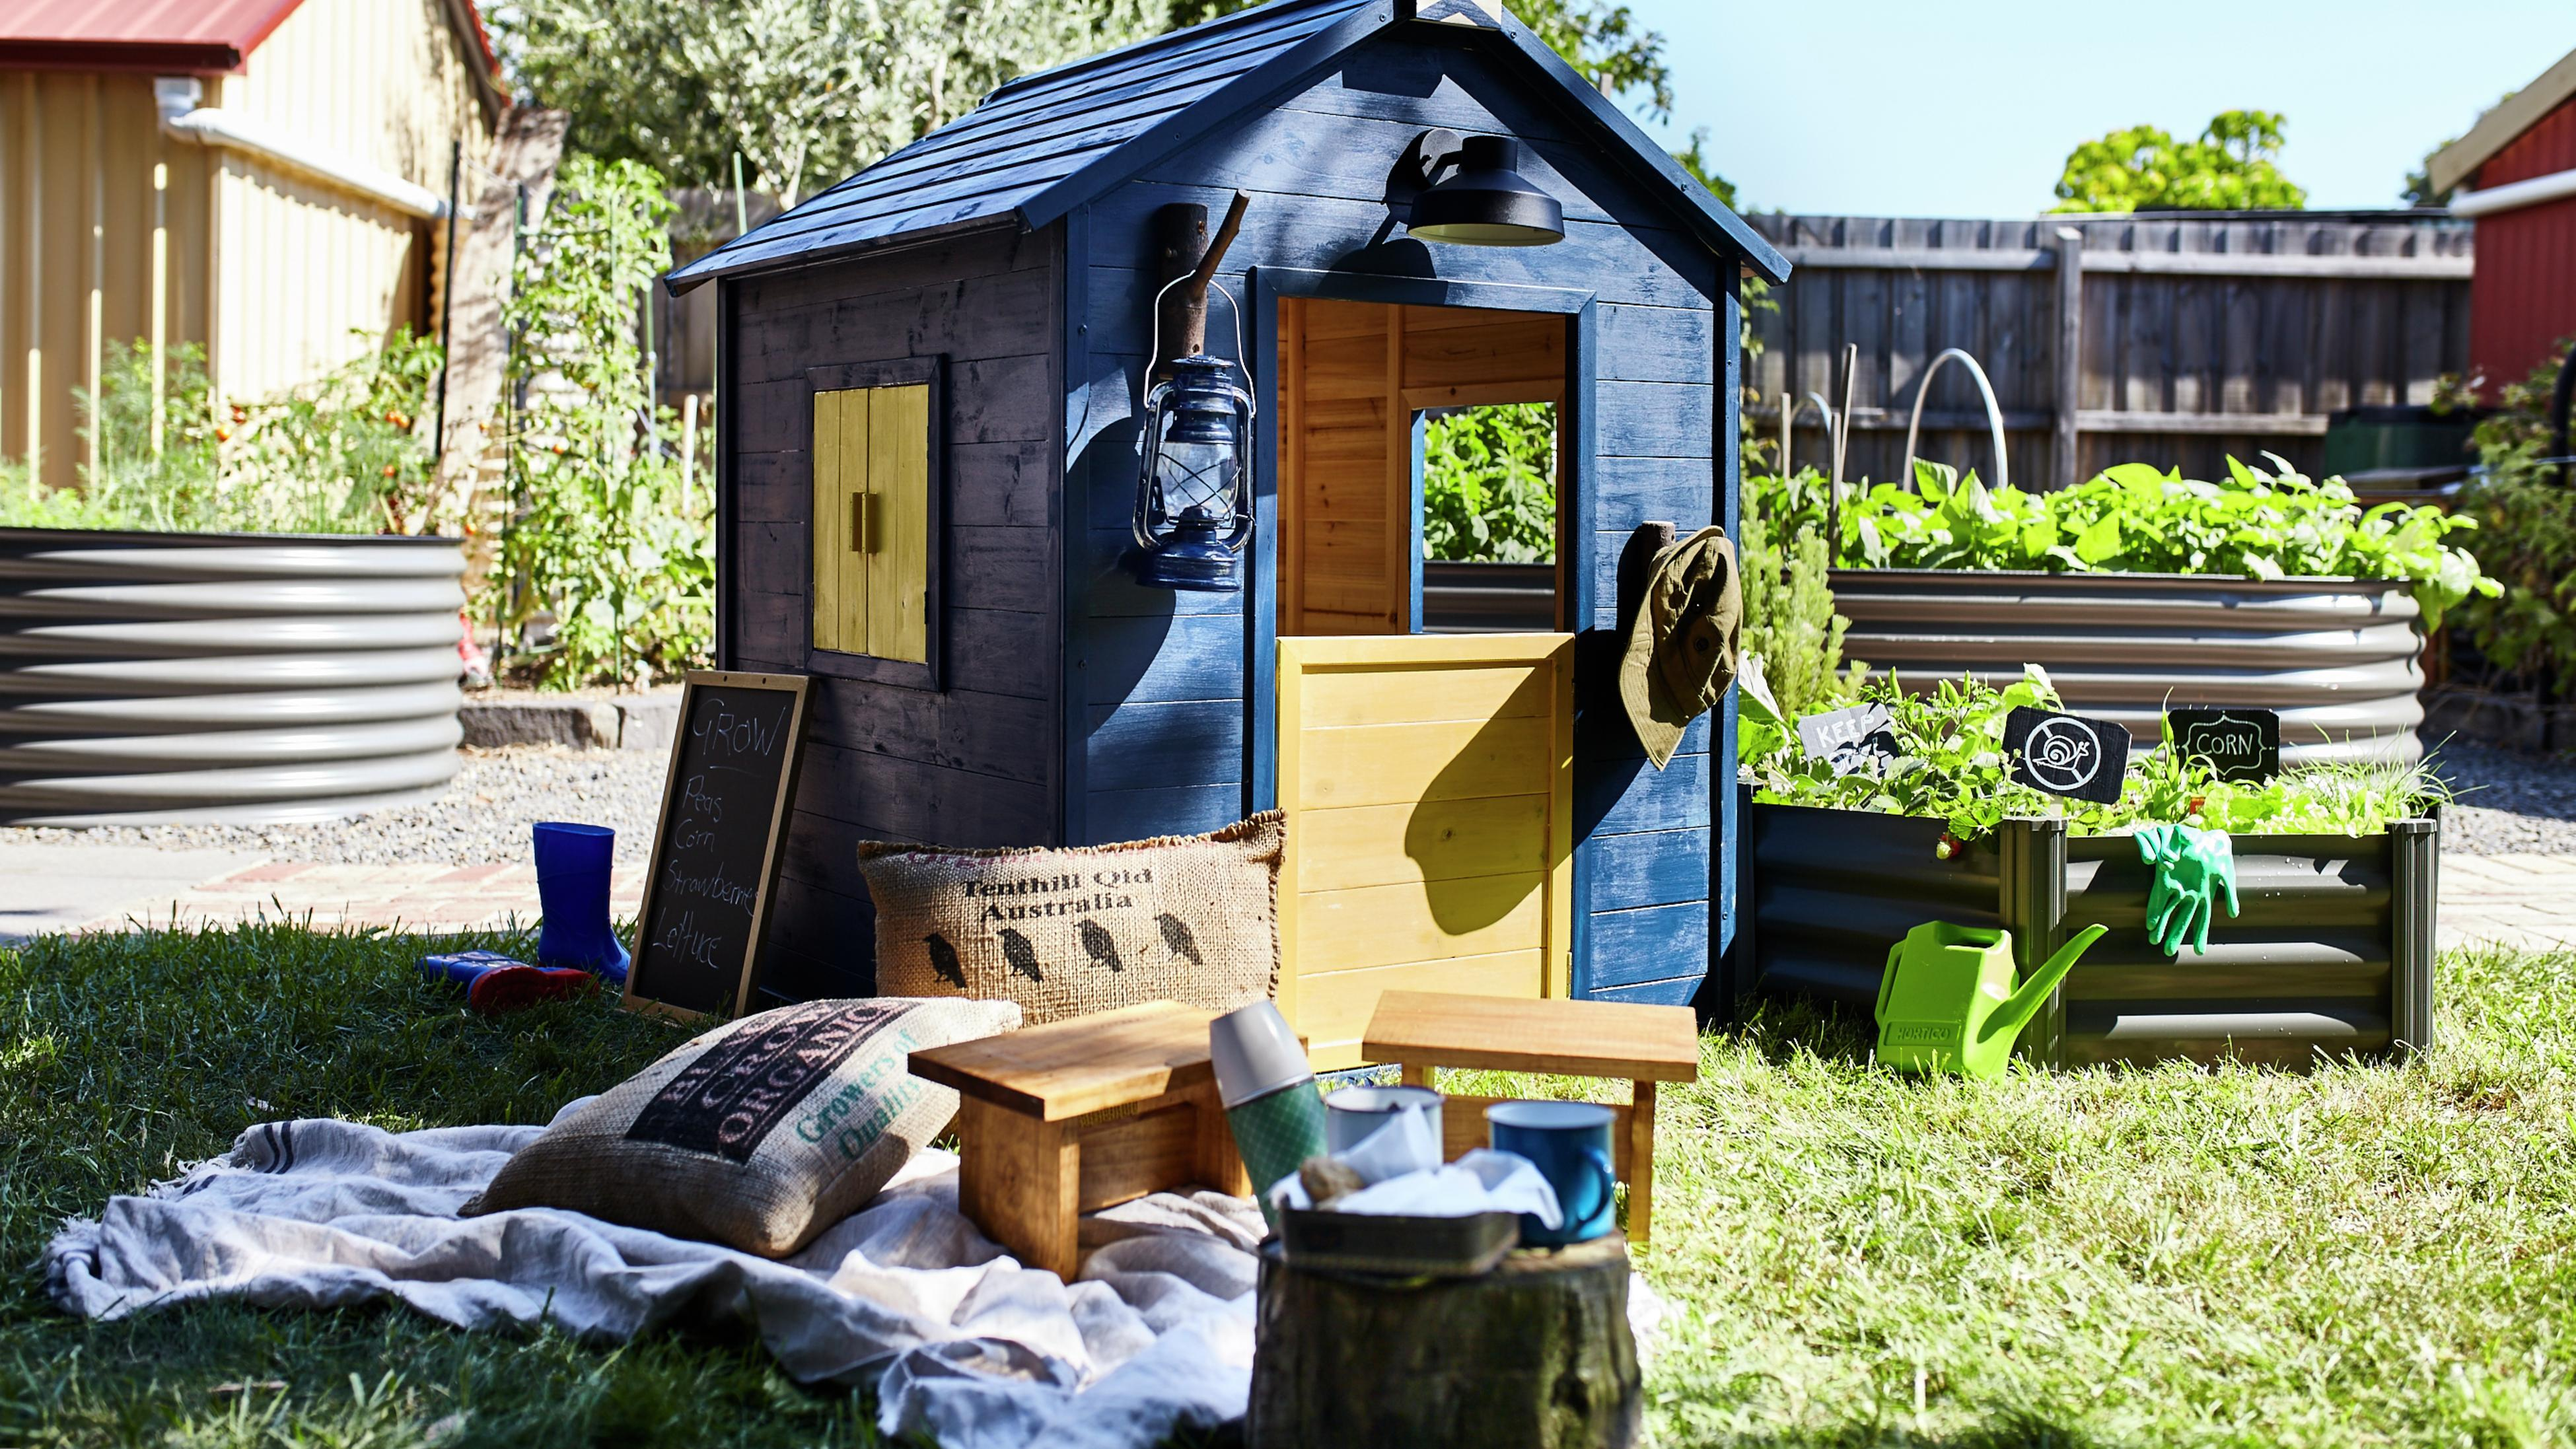 Navy kids cubby house with picnic setup out front.